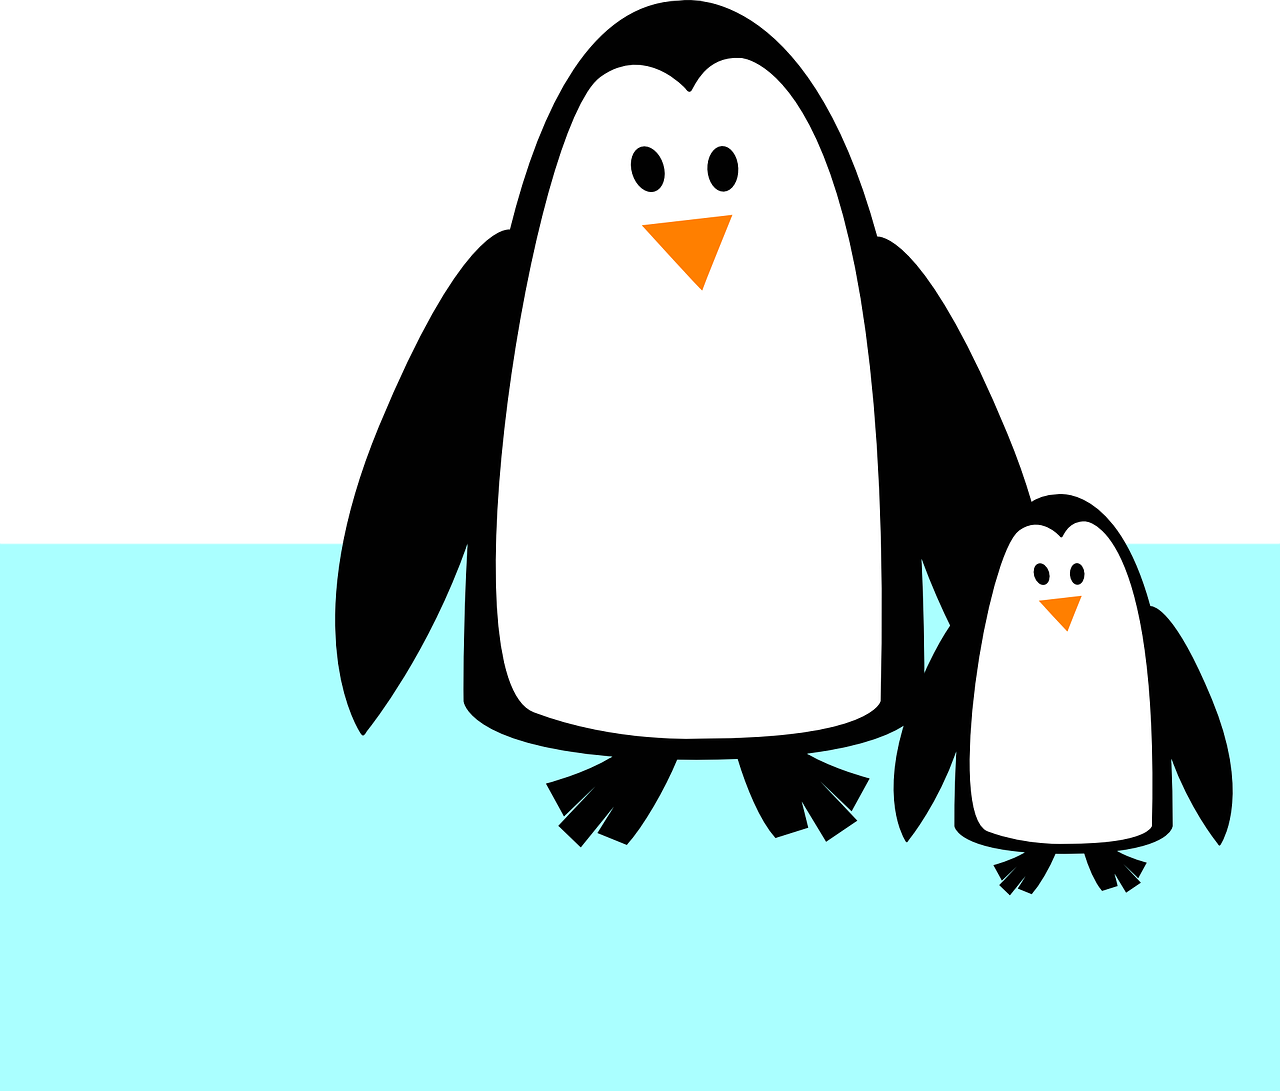 Muscles clipart penguin. Babies can celebrate world